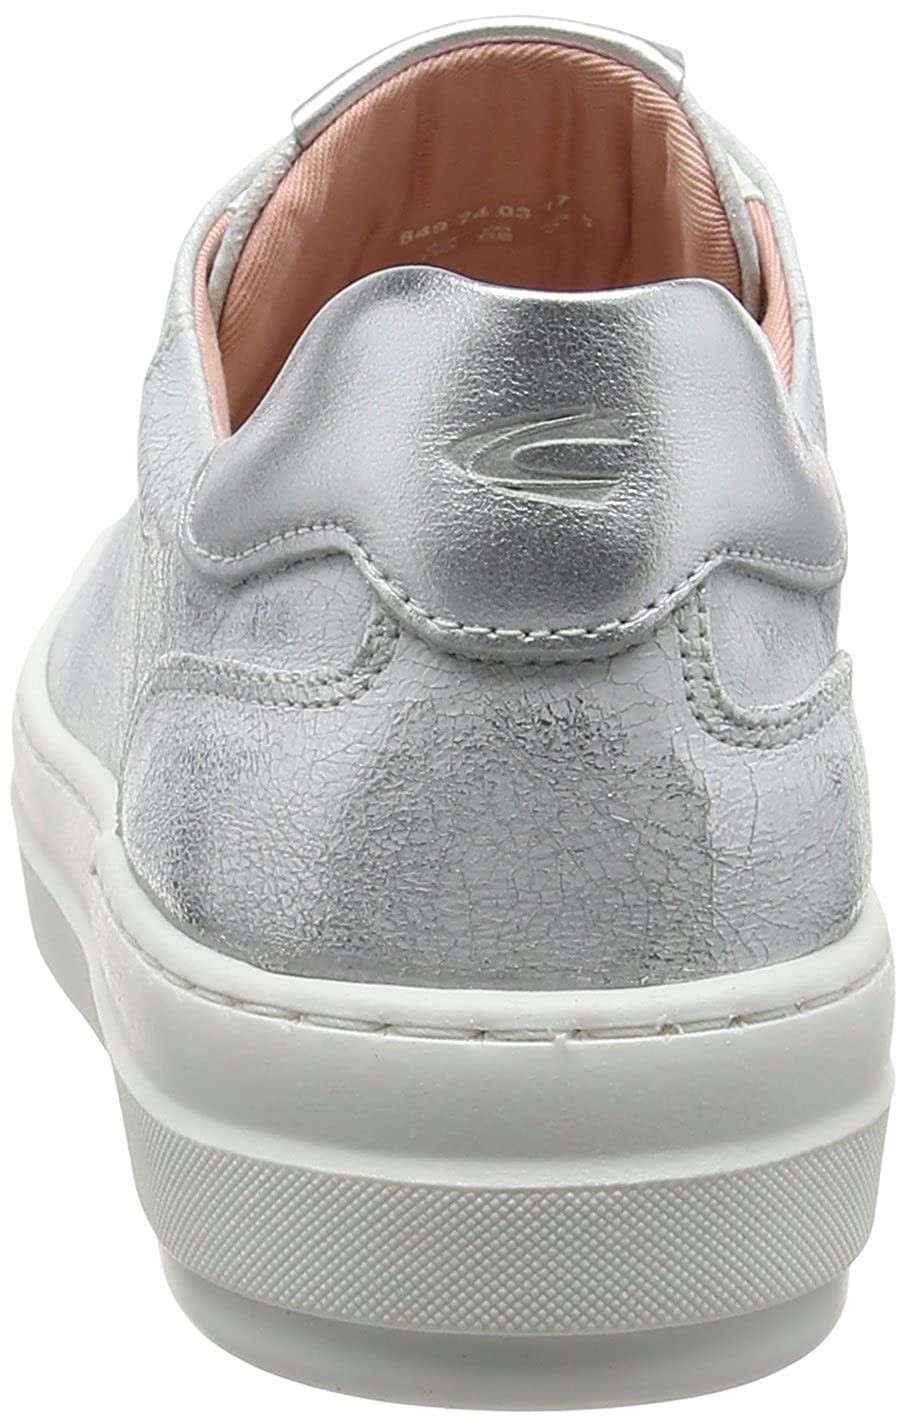 Camel active Damen Top Weiß 74 Sneakers Weiß Top (Weiß-silver 01) bc1cb6